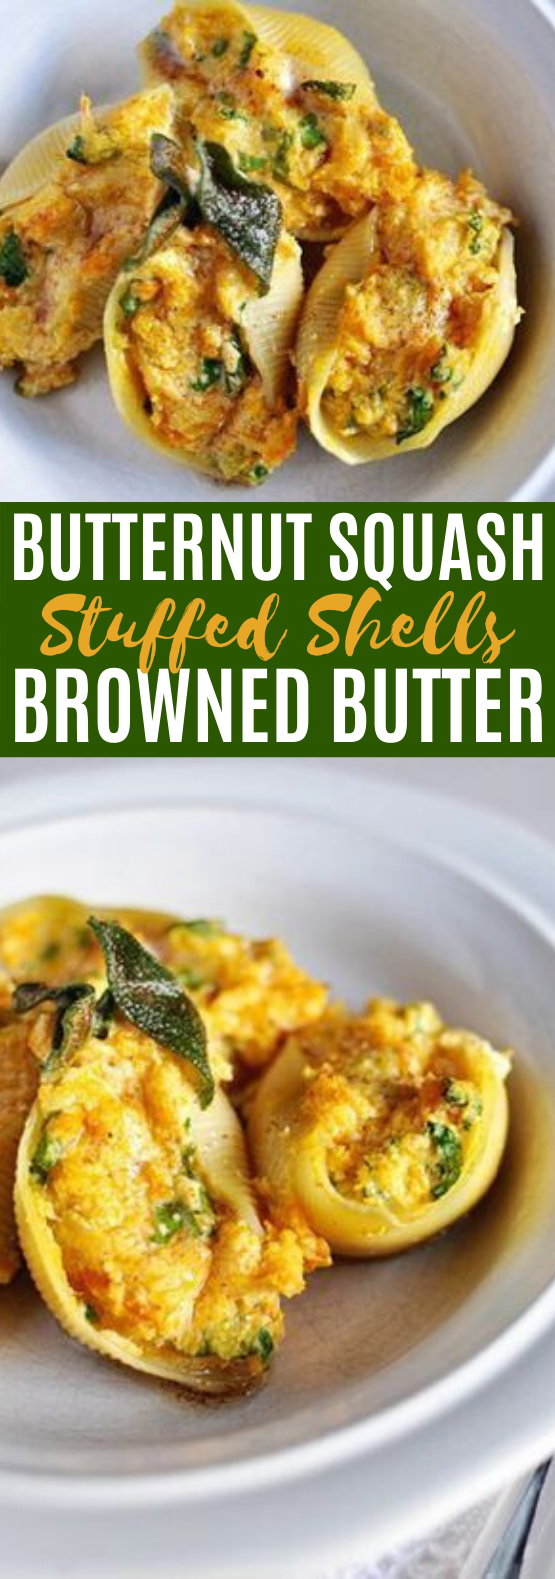 Butternut Squash Stuffed Shells with Sage Browned Butter #vegetarian #dinner #pasta #meatless #fall